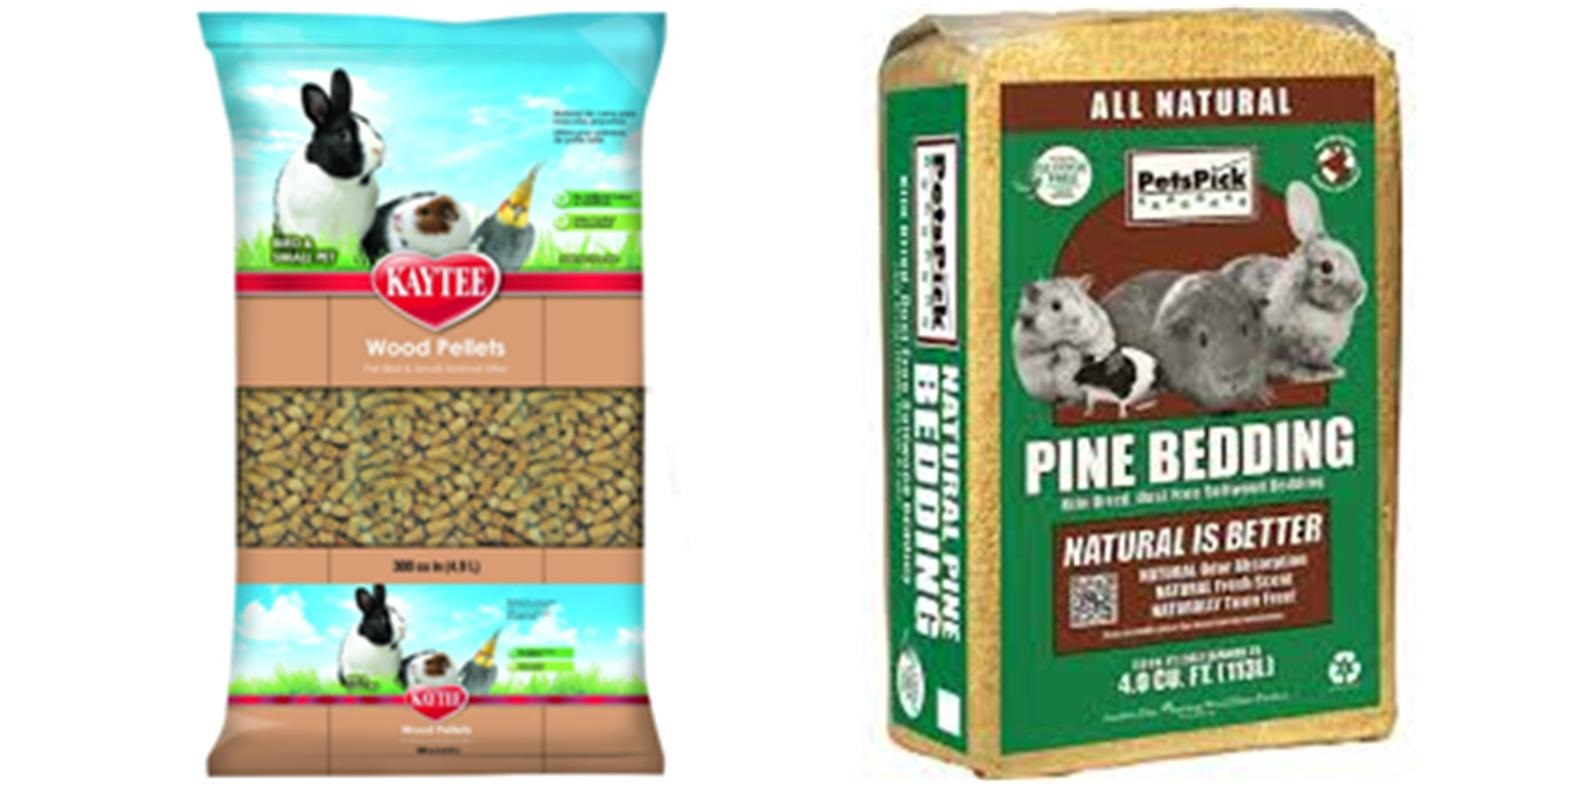 Wood pellets and pine bedding, both highly recommended options.